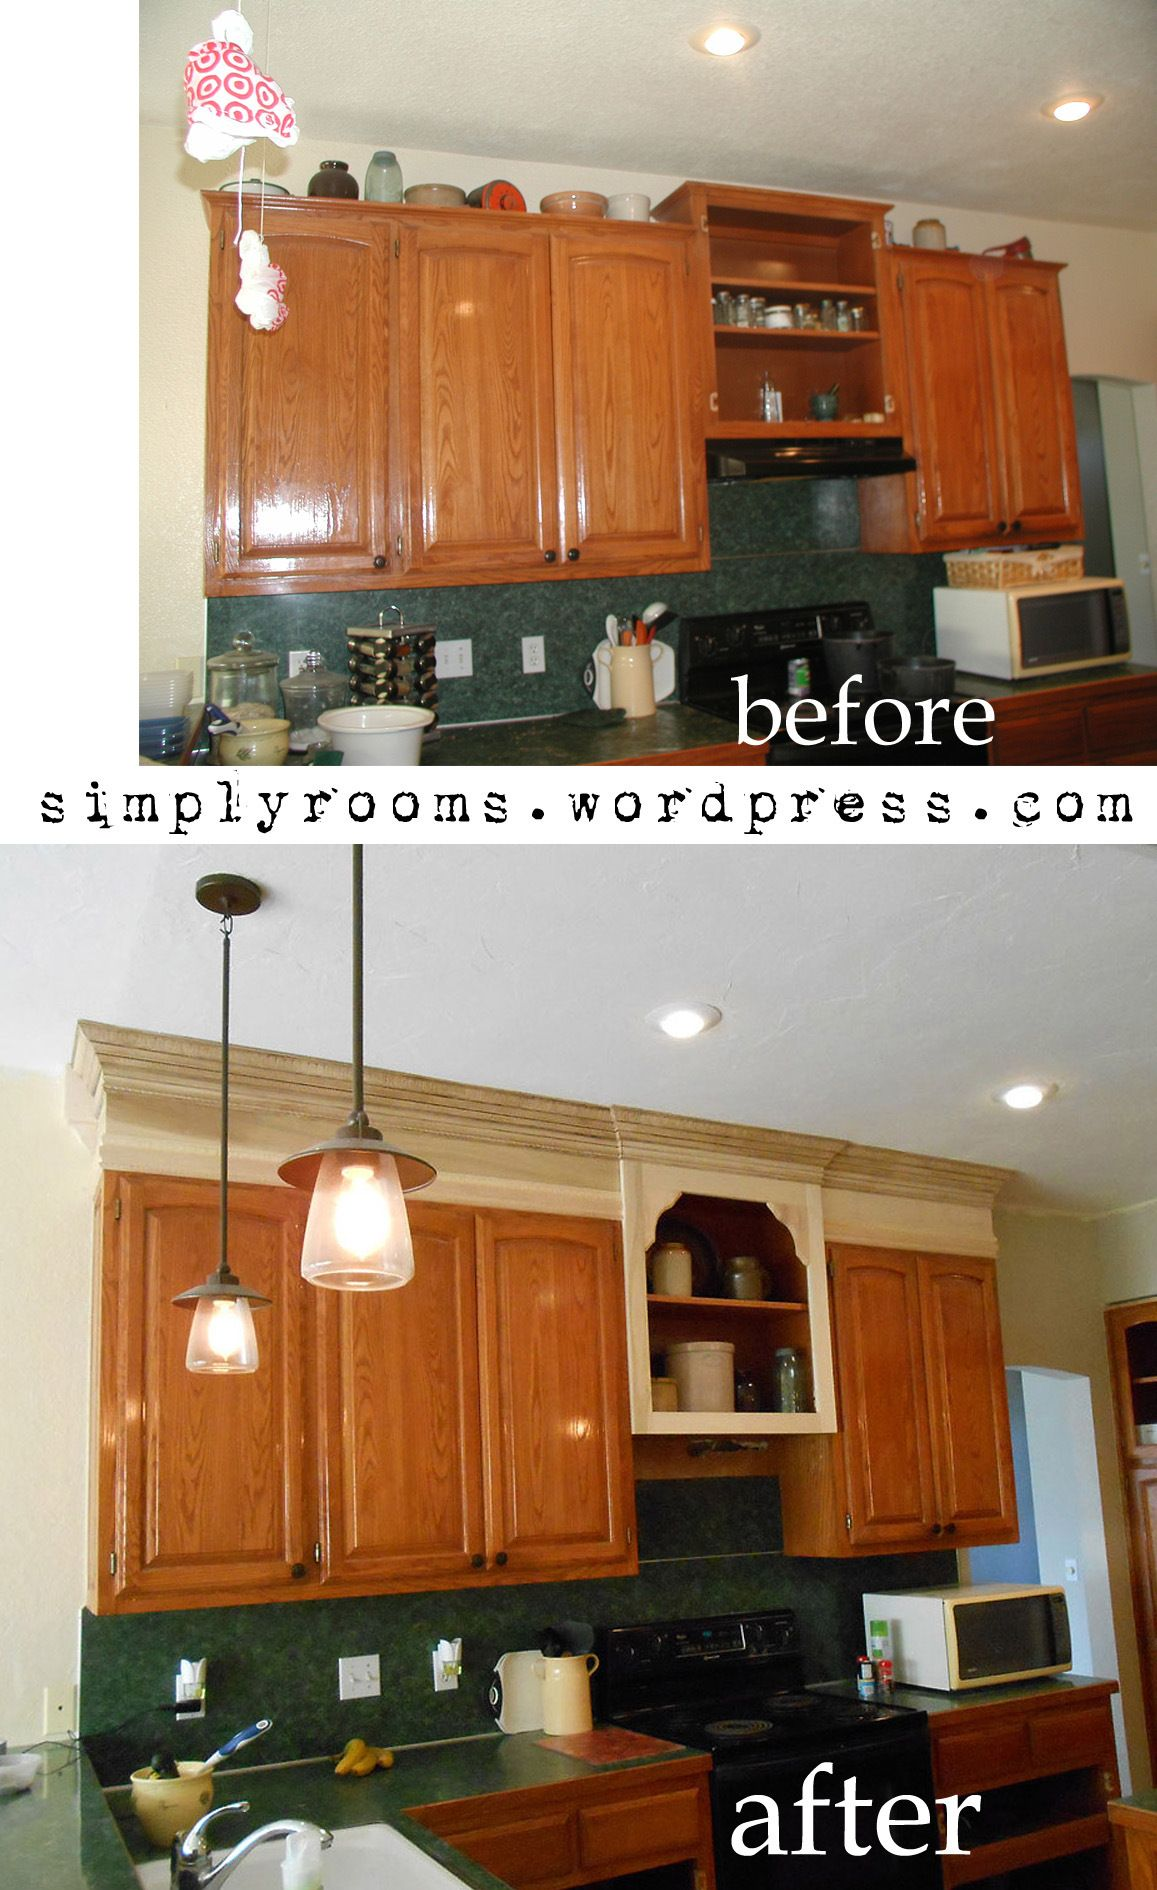 Project Making An Upper Wall Cabinet Taller Kitchen Kitchen Cabinets To Ceiling Kitchen Cabinet Remodel Cabinets To Ceiling